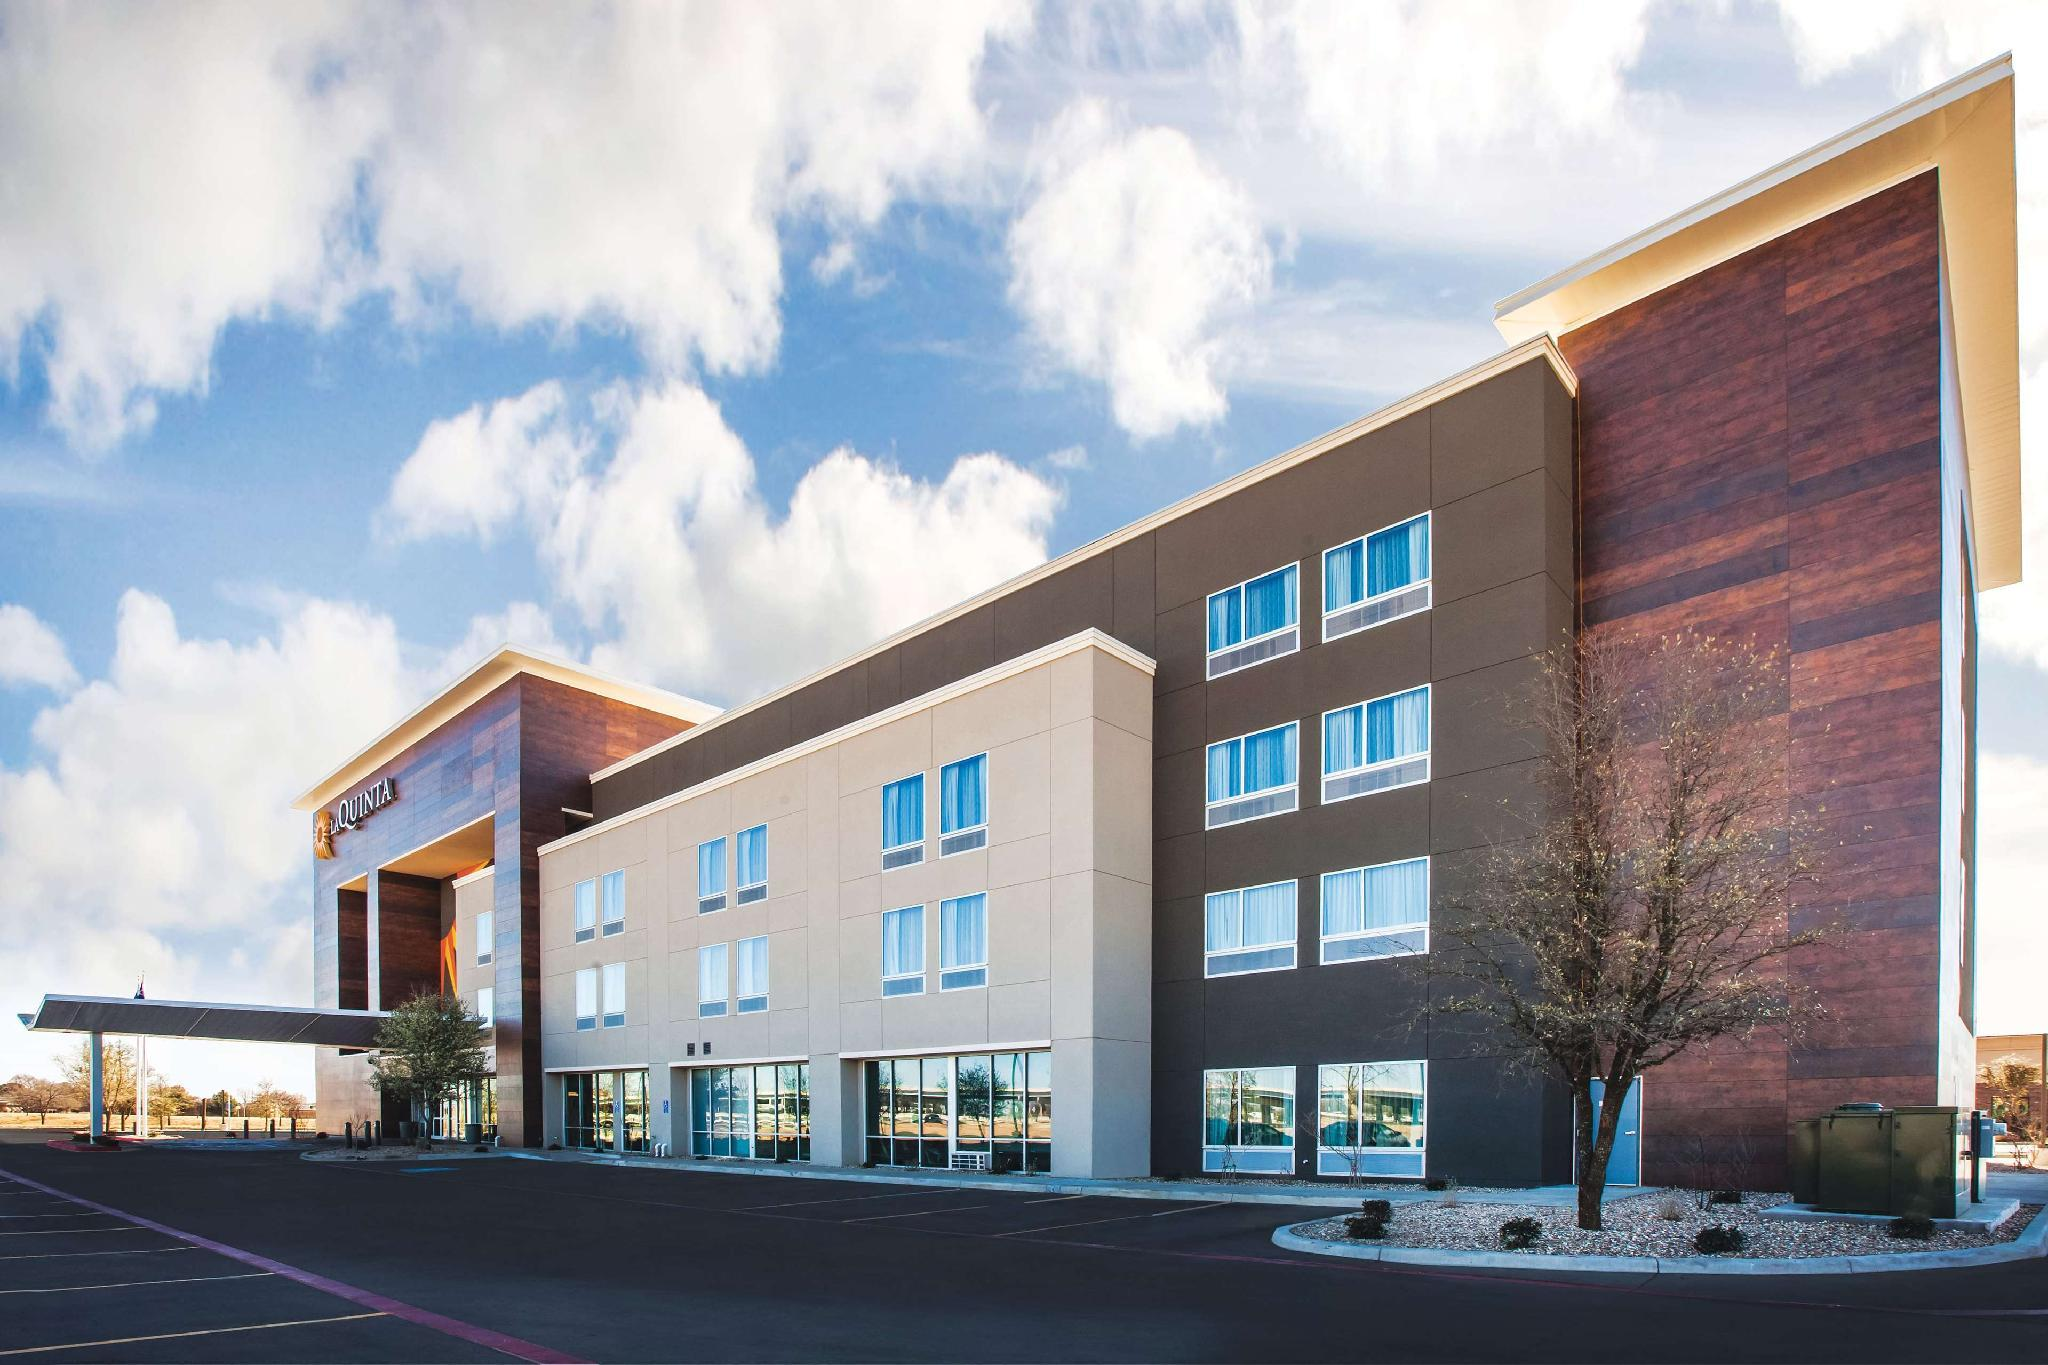 La Quinta Inn And Suites By Wyndham Lubbock South